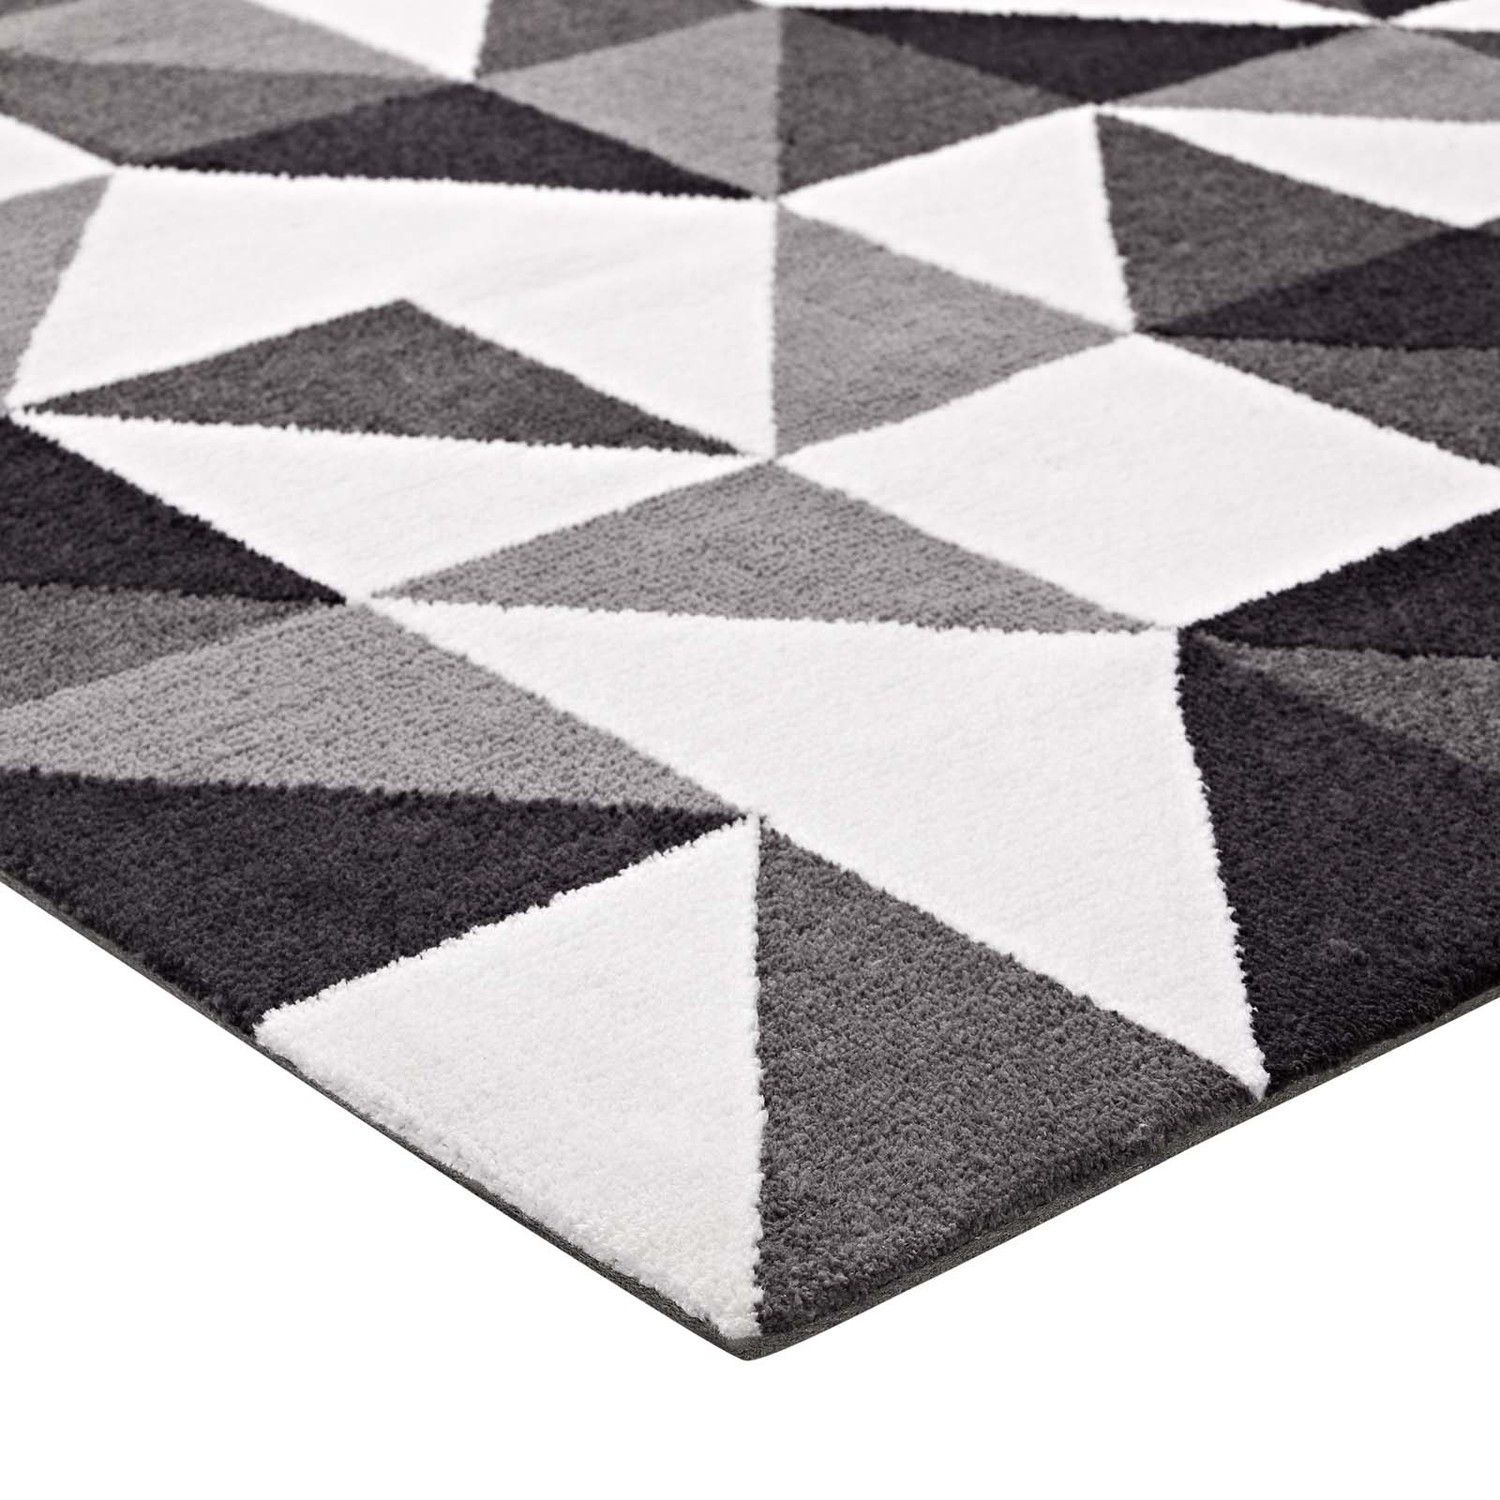 Kahula Gray Black White 8x10 Area Rug In 2020 Area Rugs 8x10